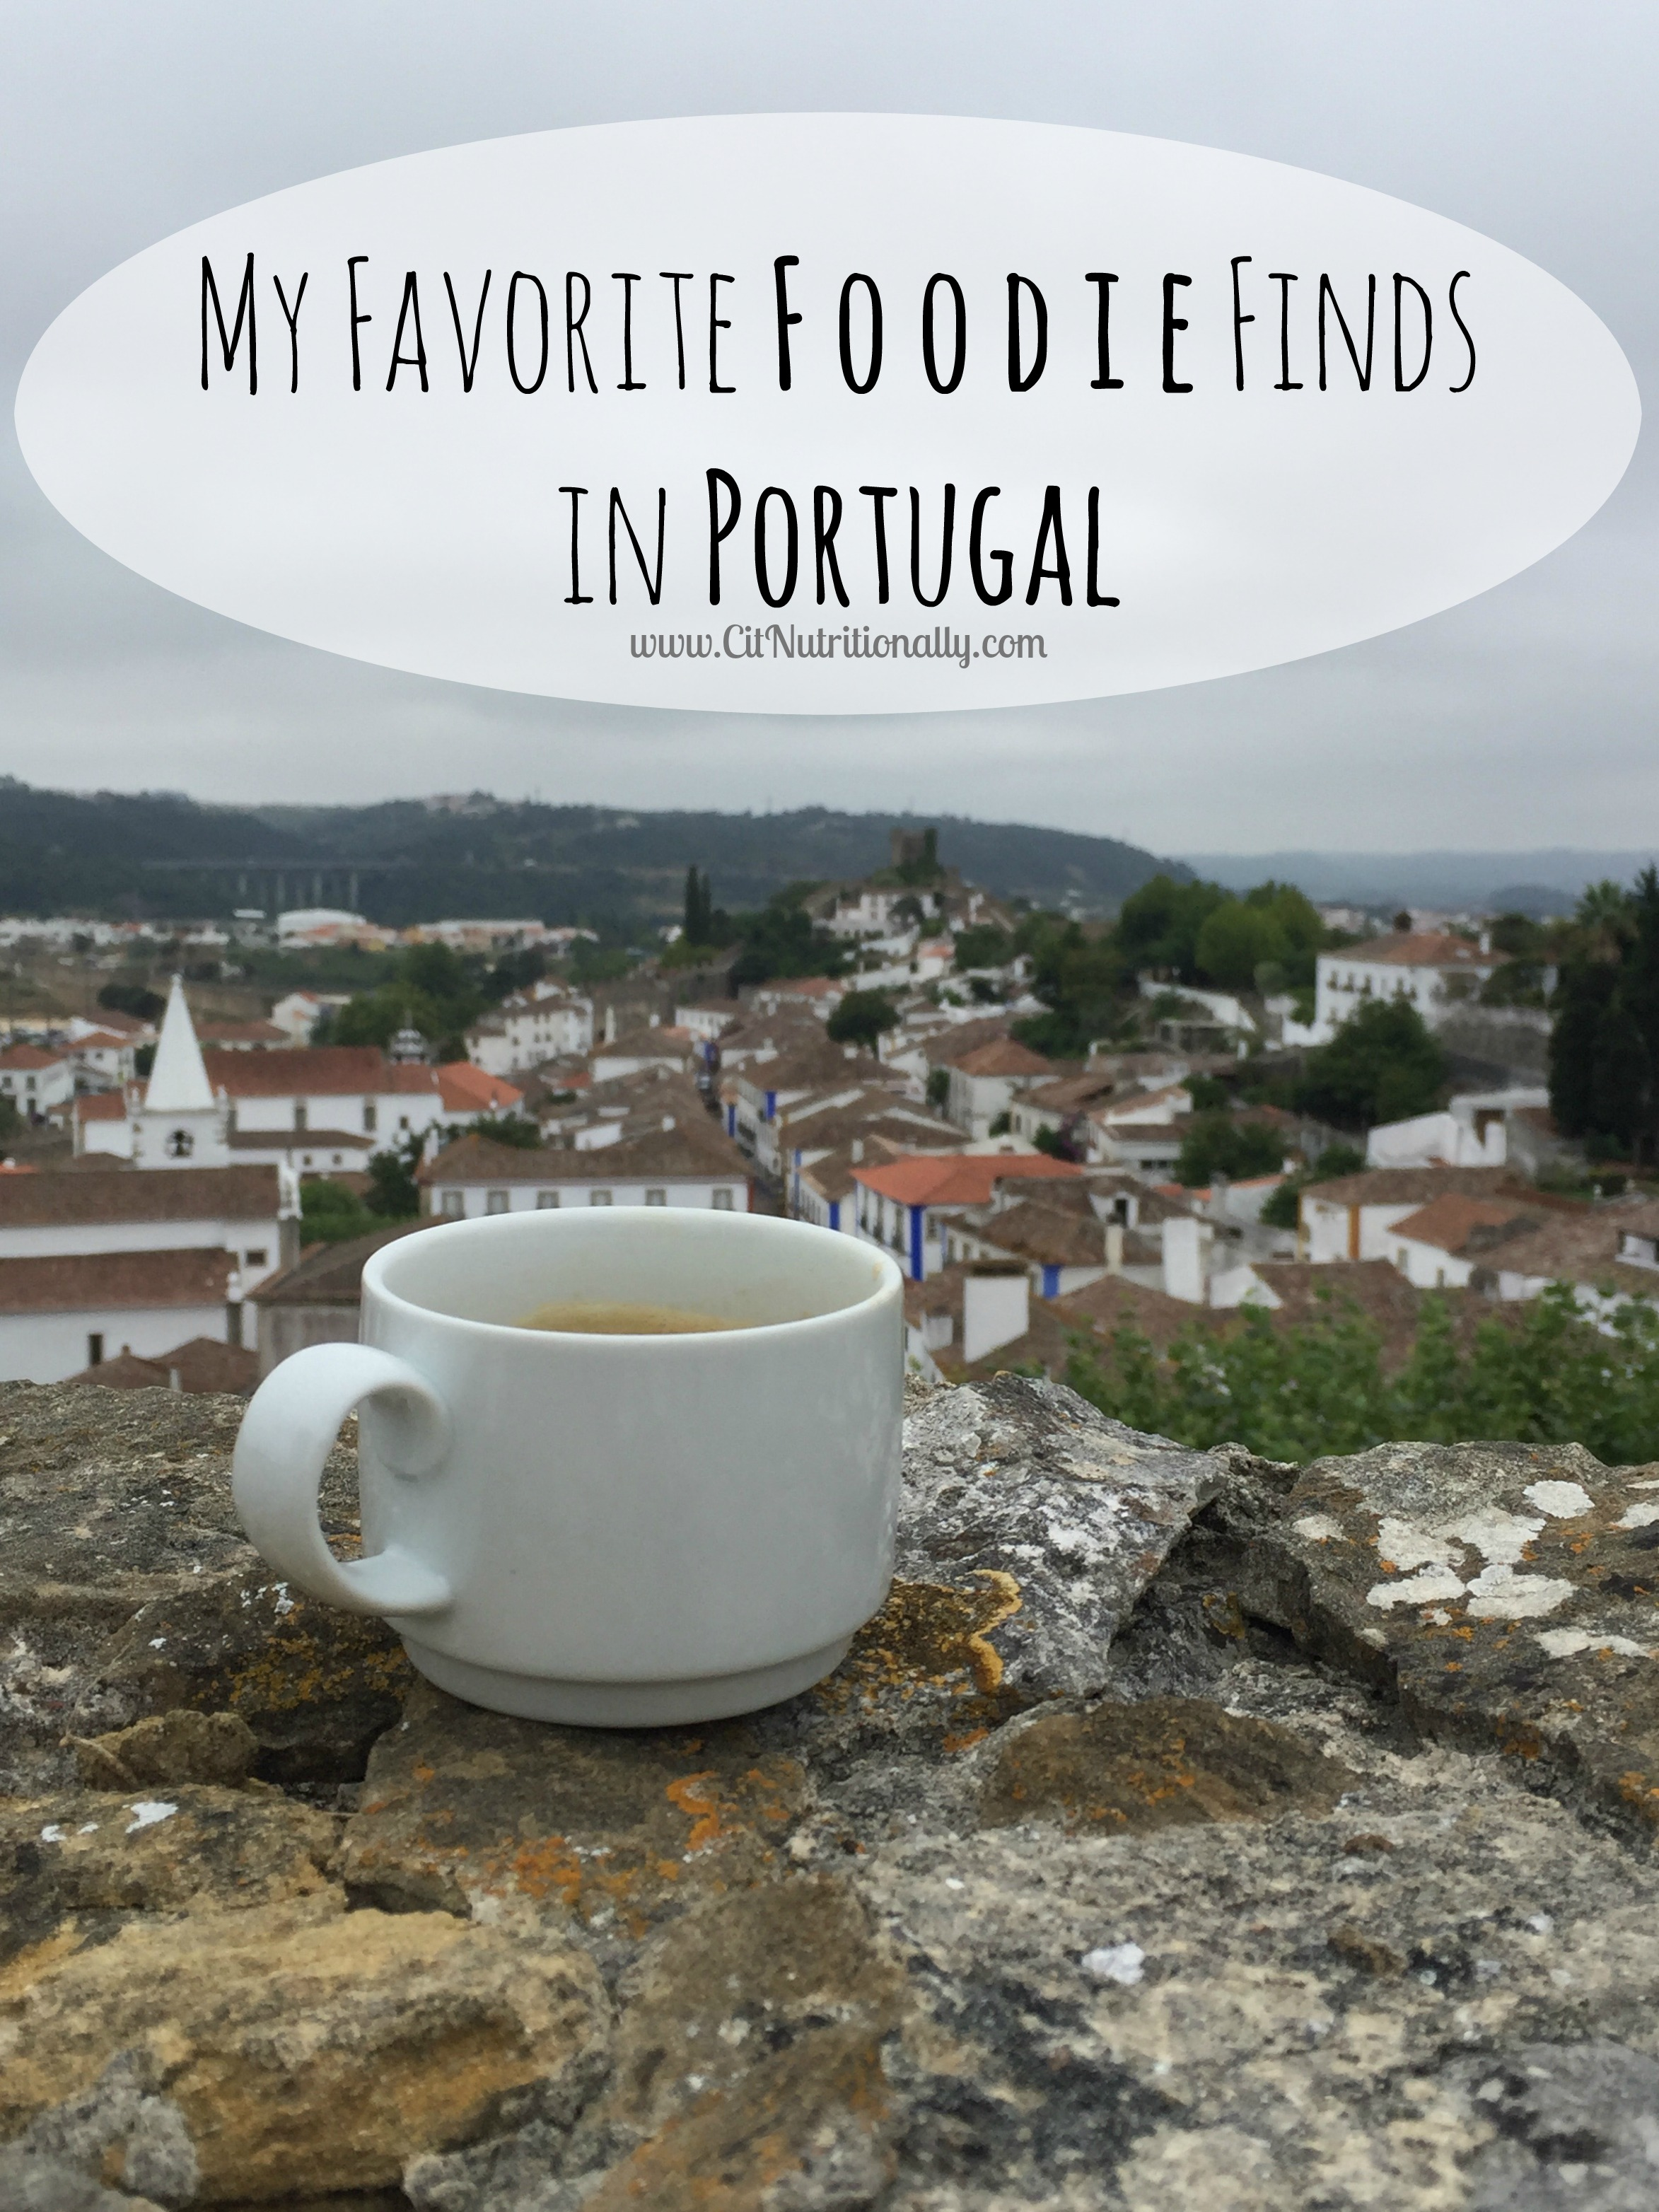 My Favorite Foodie Finds in Portugal | C it Nutritionally #travel #healthyfood #healthytravel #Portugal